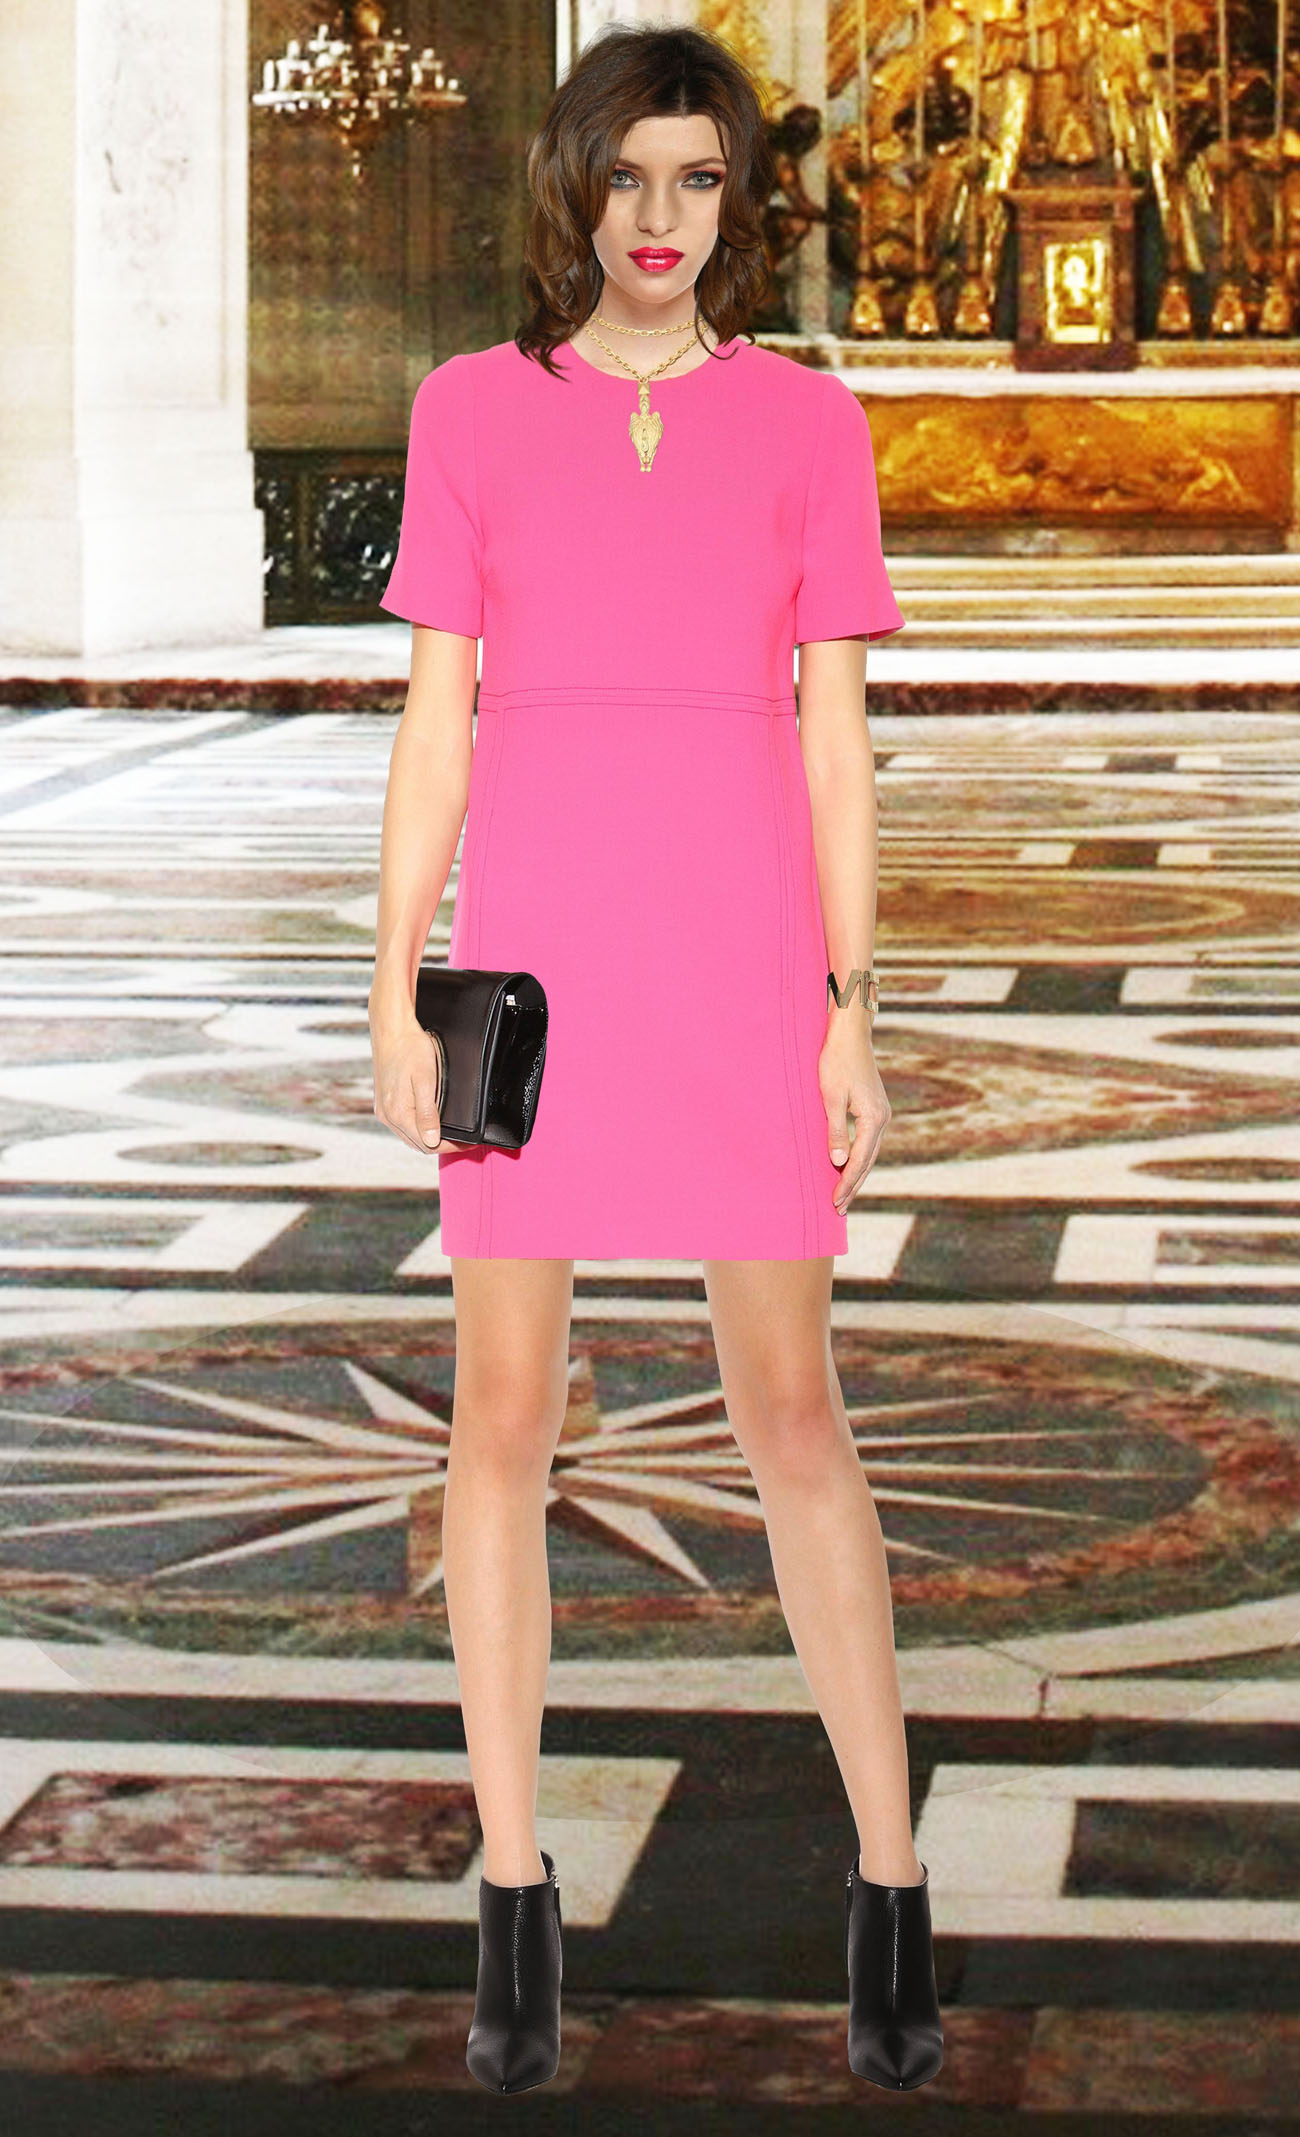 clothing model in pink victoria victoria beckham dress copy cr